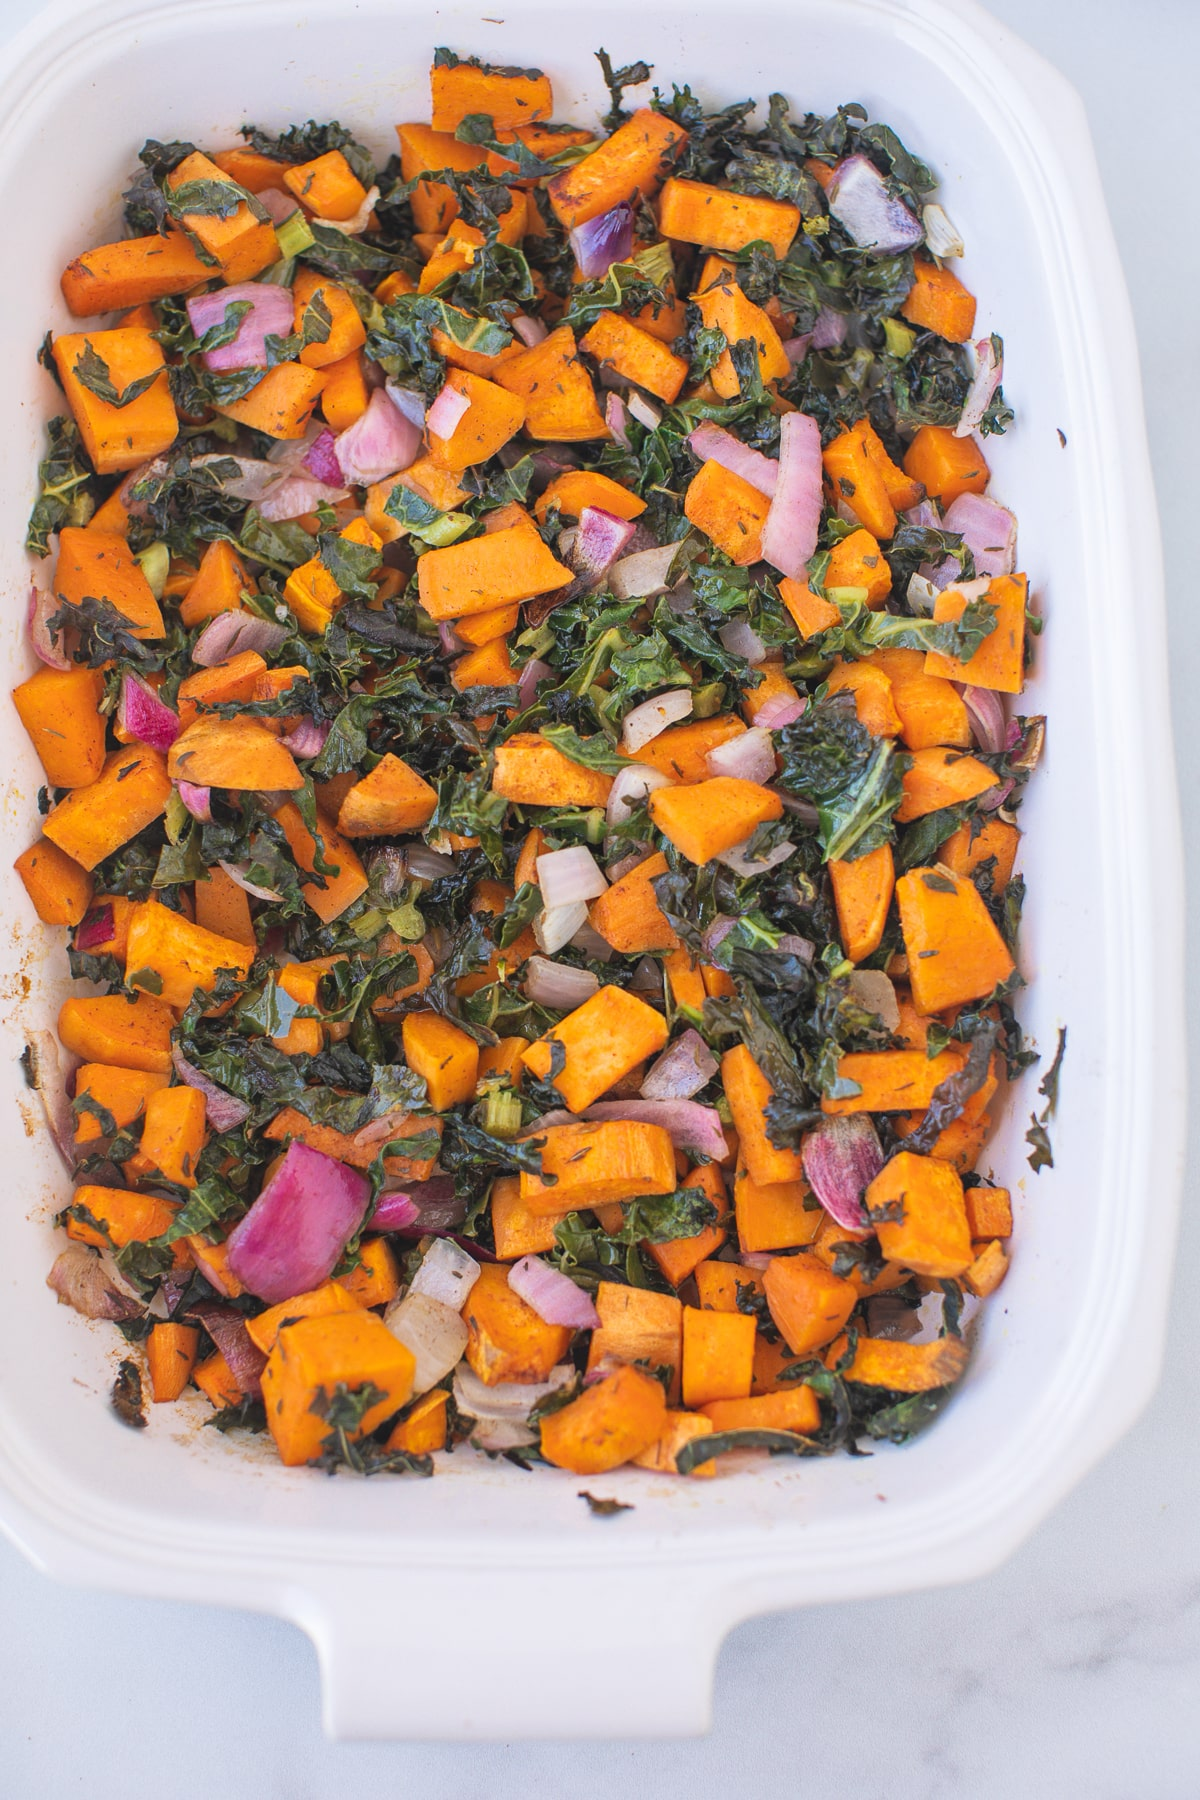 casserole dish with baked sweet potatoes and kale